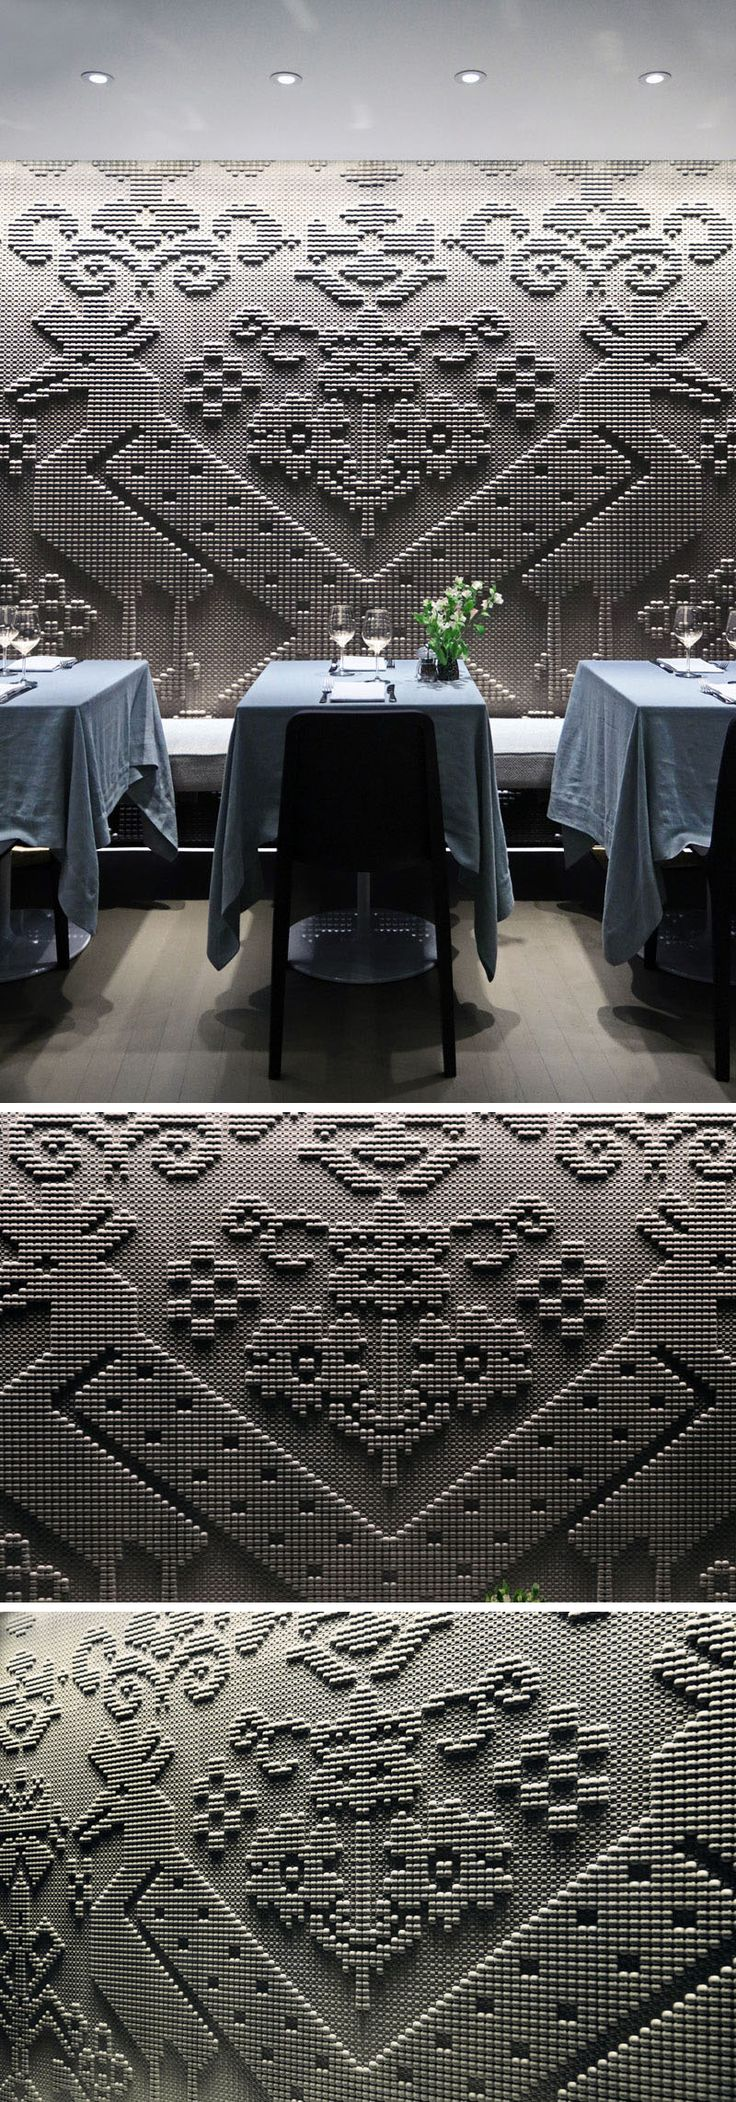 #wall #decor Wall Decor Ideas - A chiseled natural stone tapestry covers the wall of this modern restaurant. - The inspiration of the stone tapestries comes from Sardinian fabrics